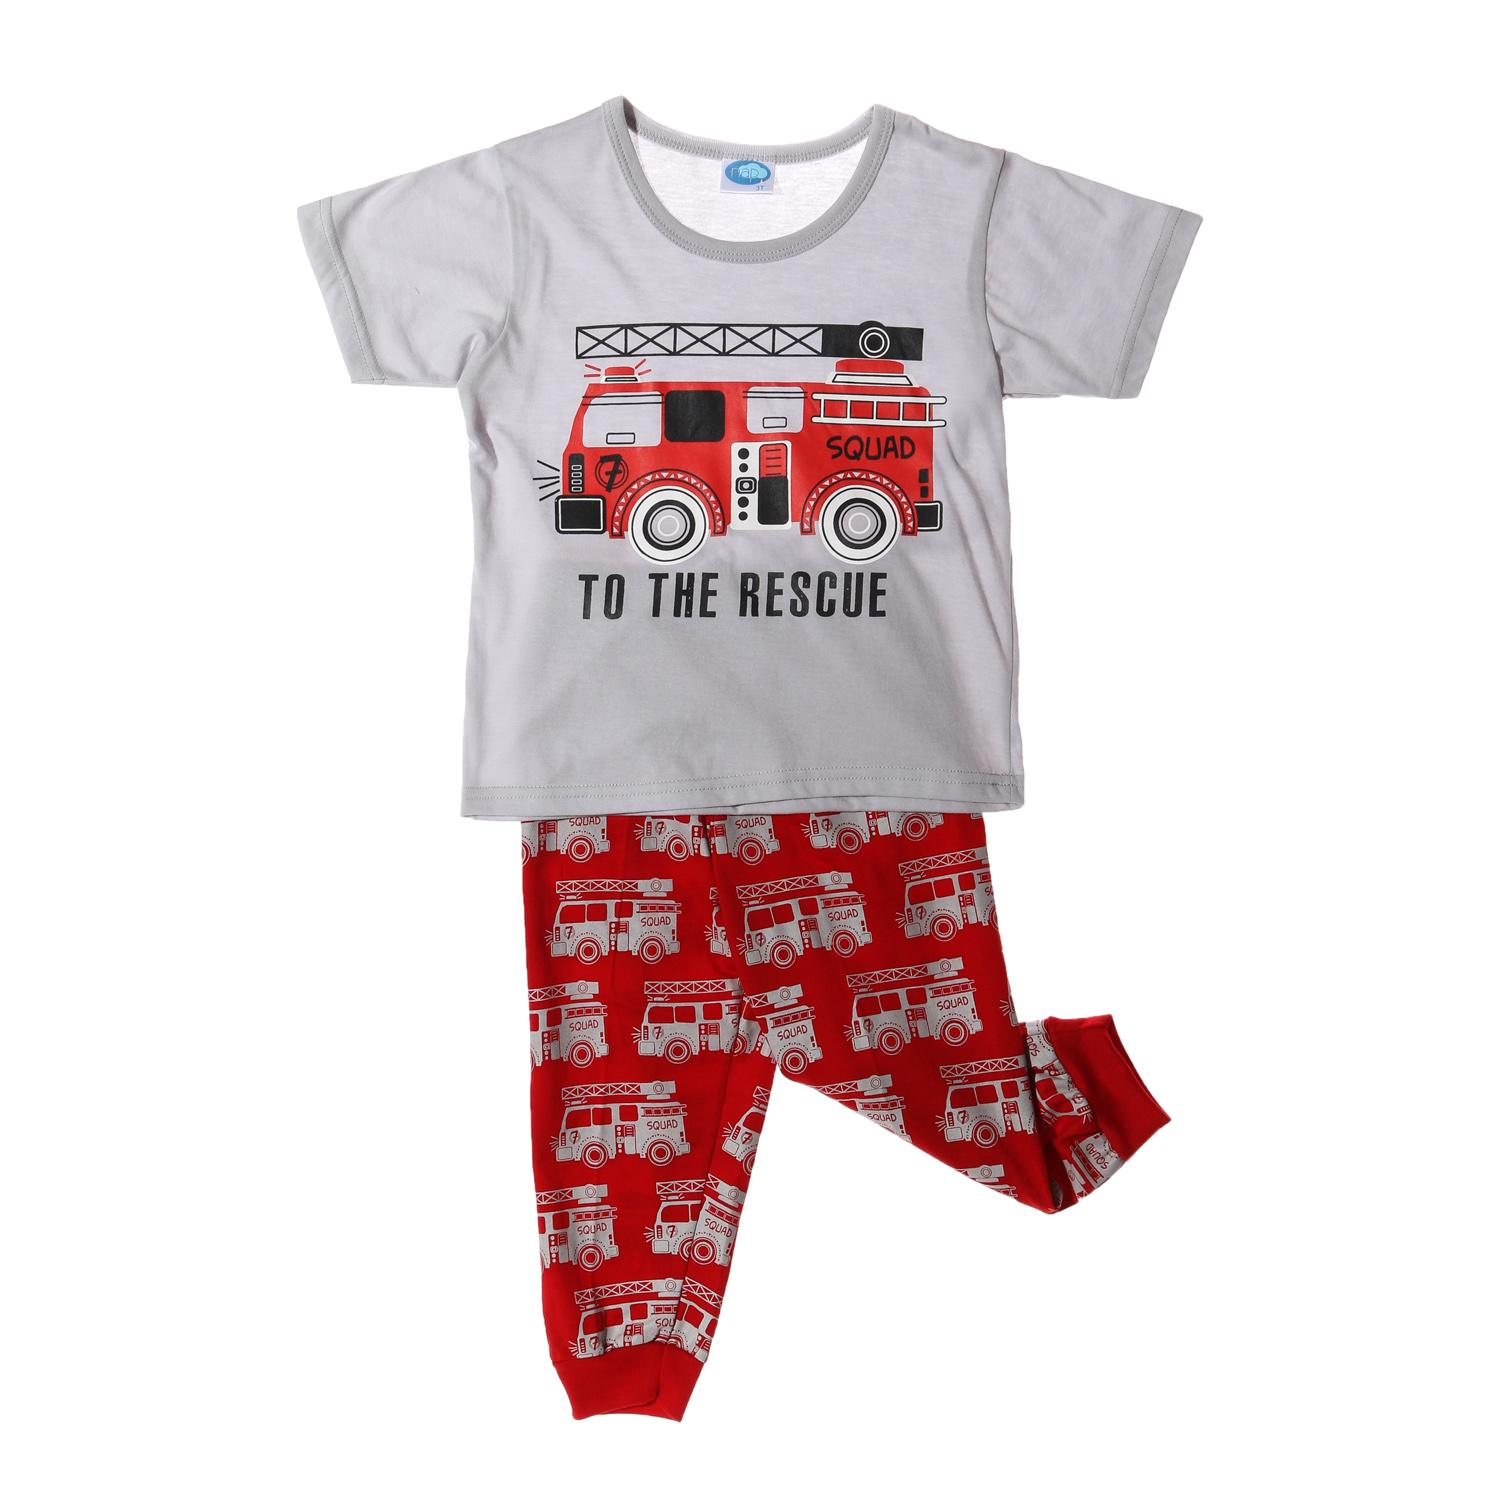 Nap Toddler Boys To The Rescue Pajama Set In Gray By The Sm Store.